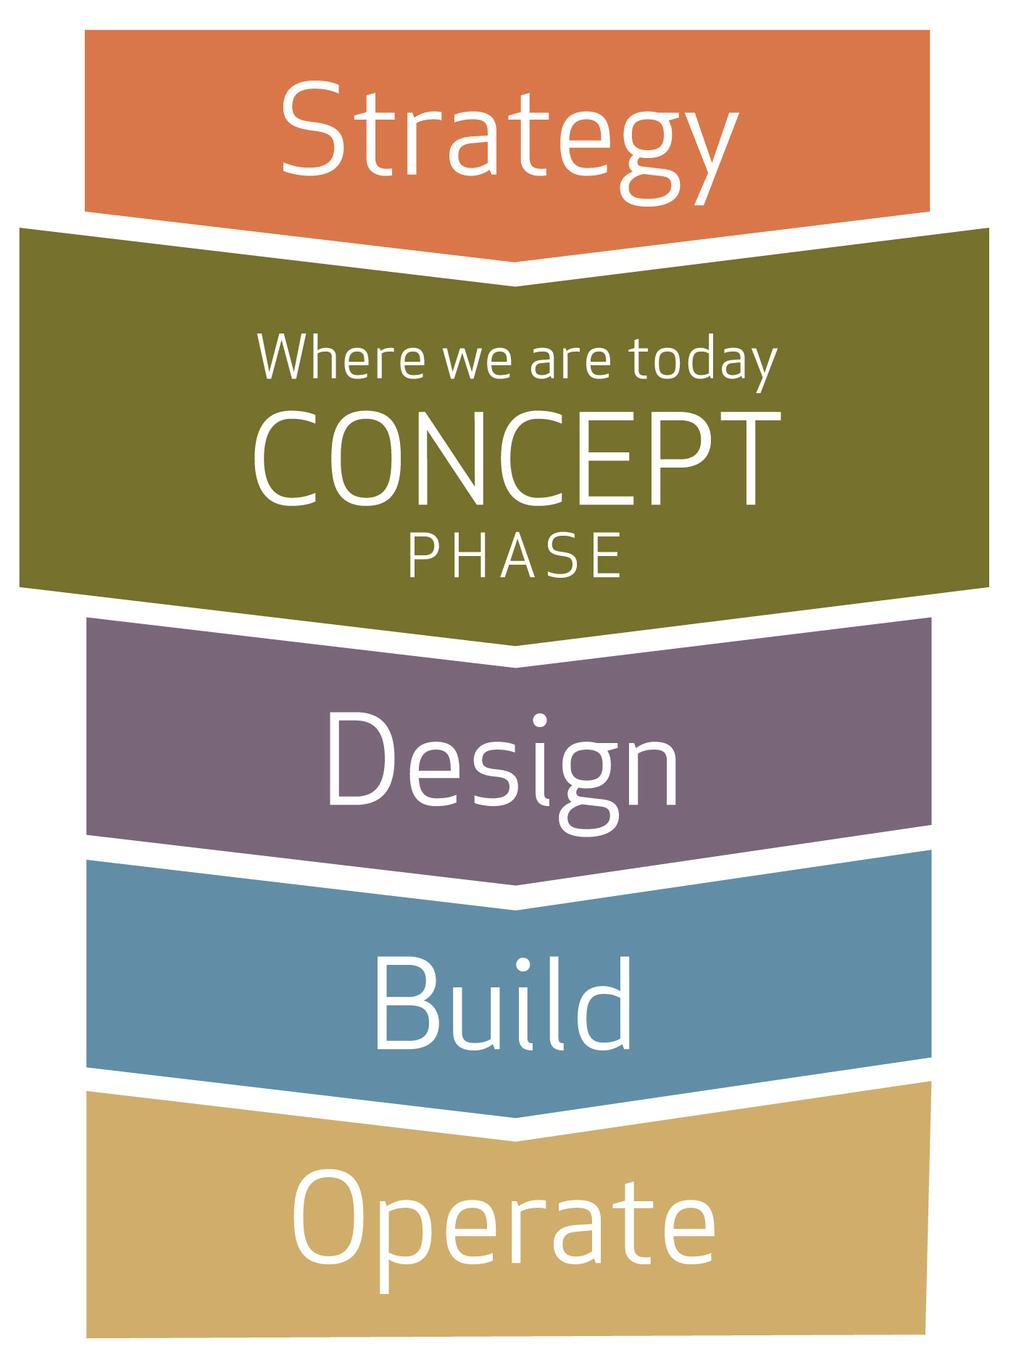 Project Timeline Concept Plan Development: 2015 Concept Plan Completion: Early 2016